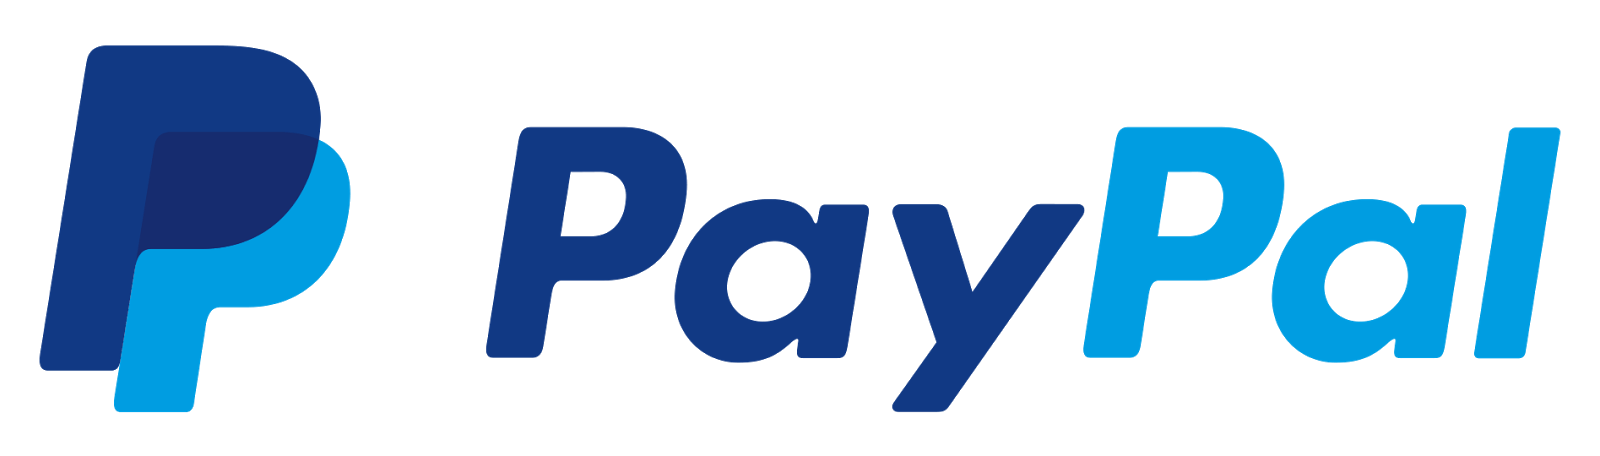 live-rates accepts paypal